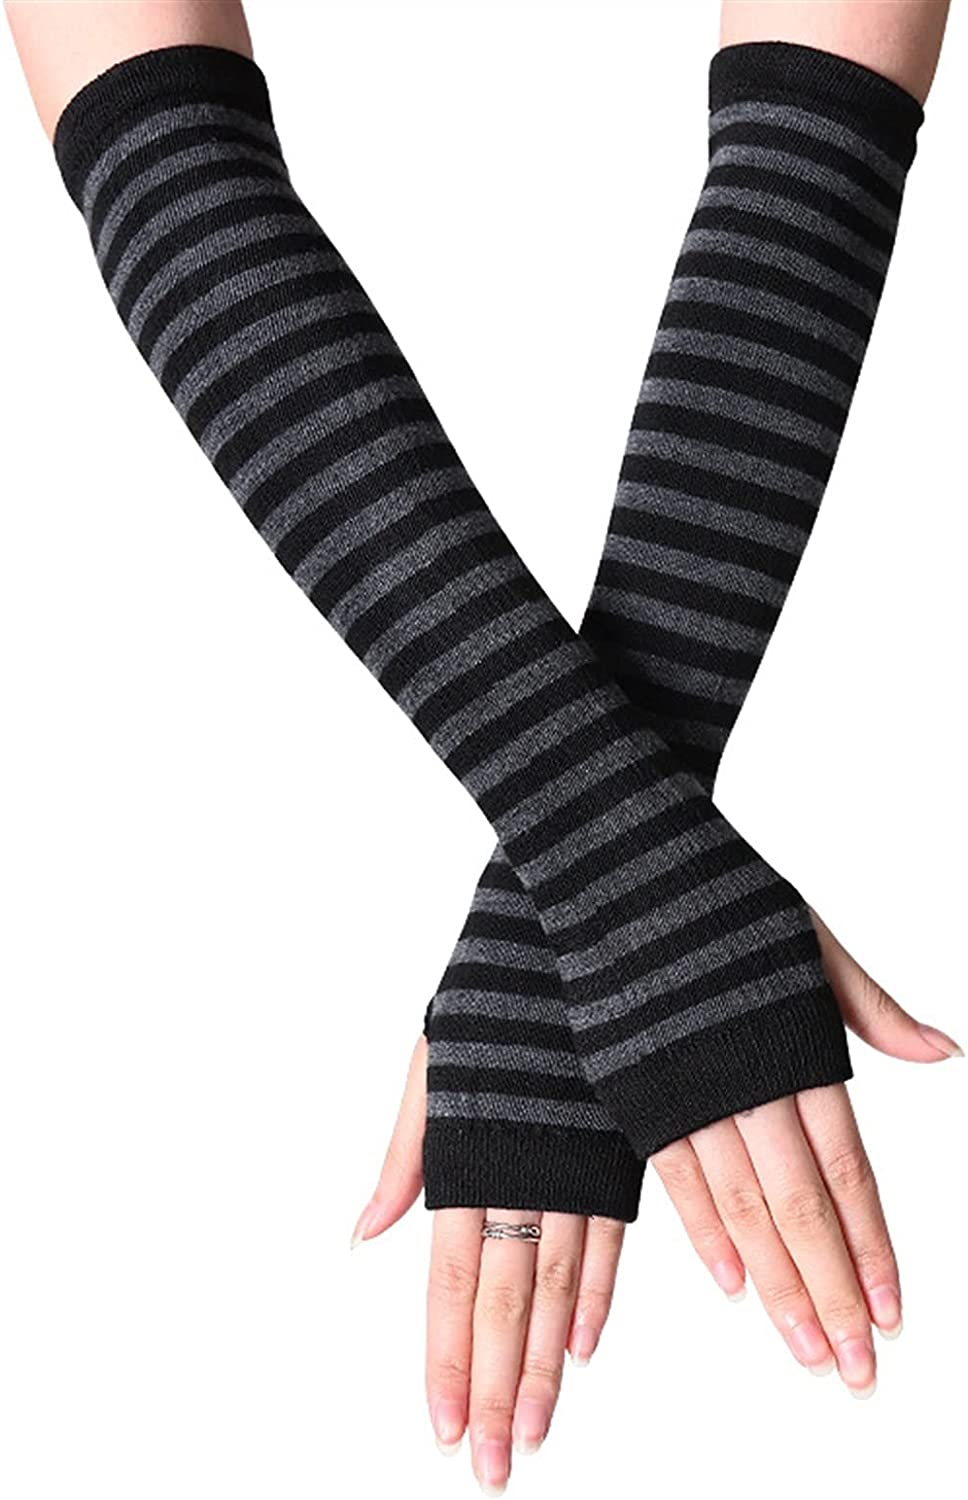 LUBINGT Winter Gloves Autumn and Winter Women Anime Black White Striped Elbow Gloves Warmer Knitted Long Fingerless Arm Gloves Mittens (Color : C, Gloves Size : 32x8cm)